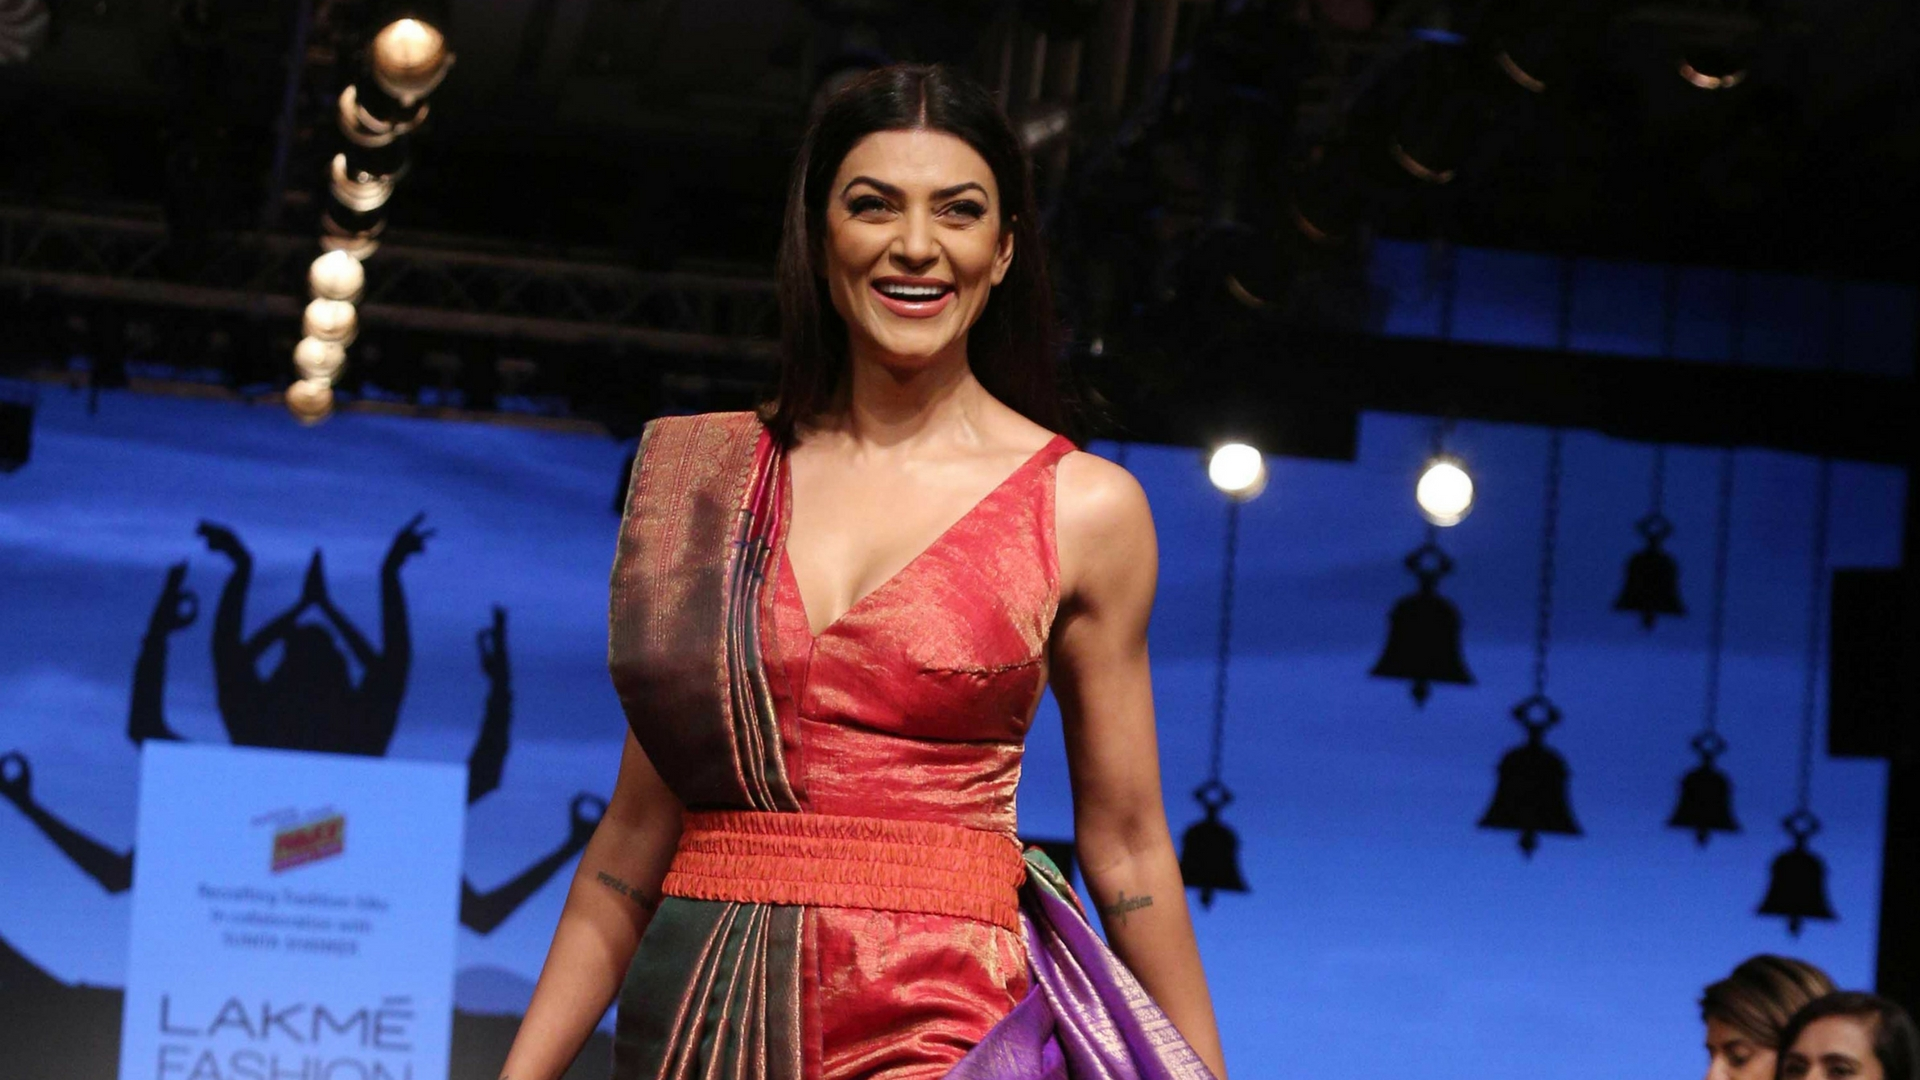 Doctors Told Me to Give up Acting: Sushmita Opens up on Illness